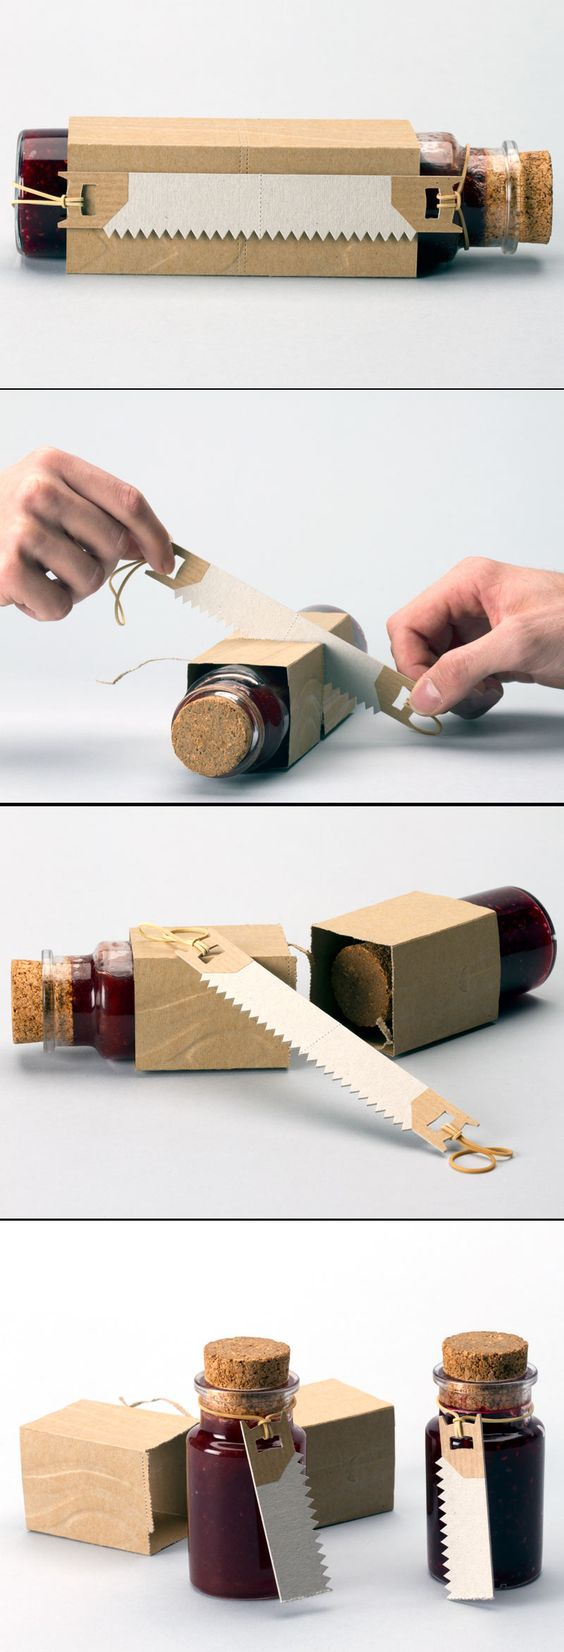 packaging-creativo-carton-divertido